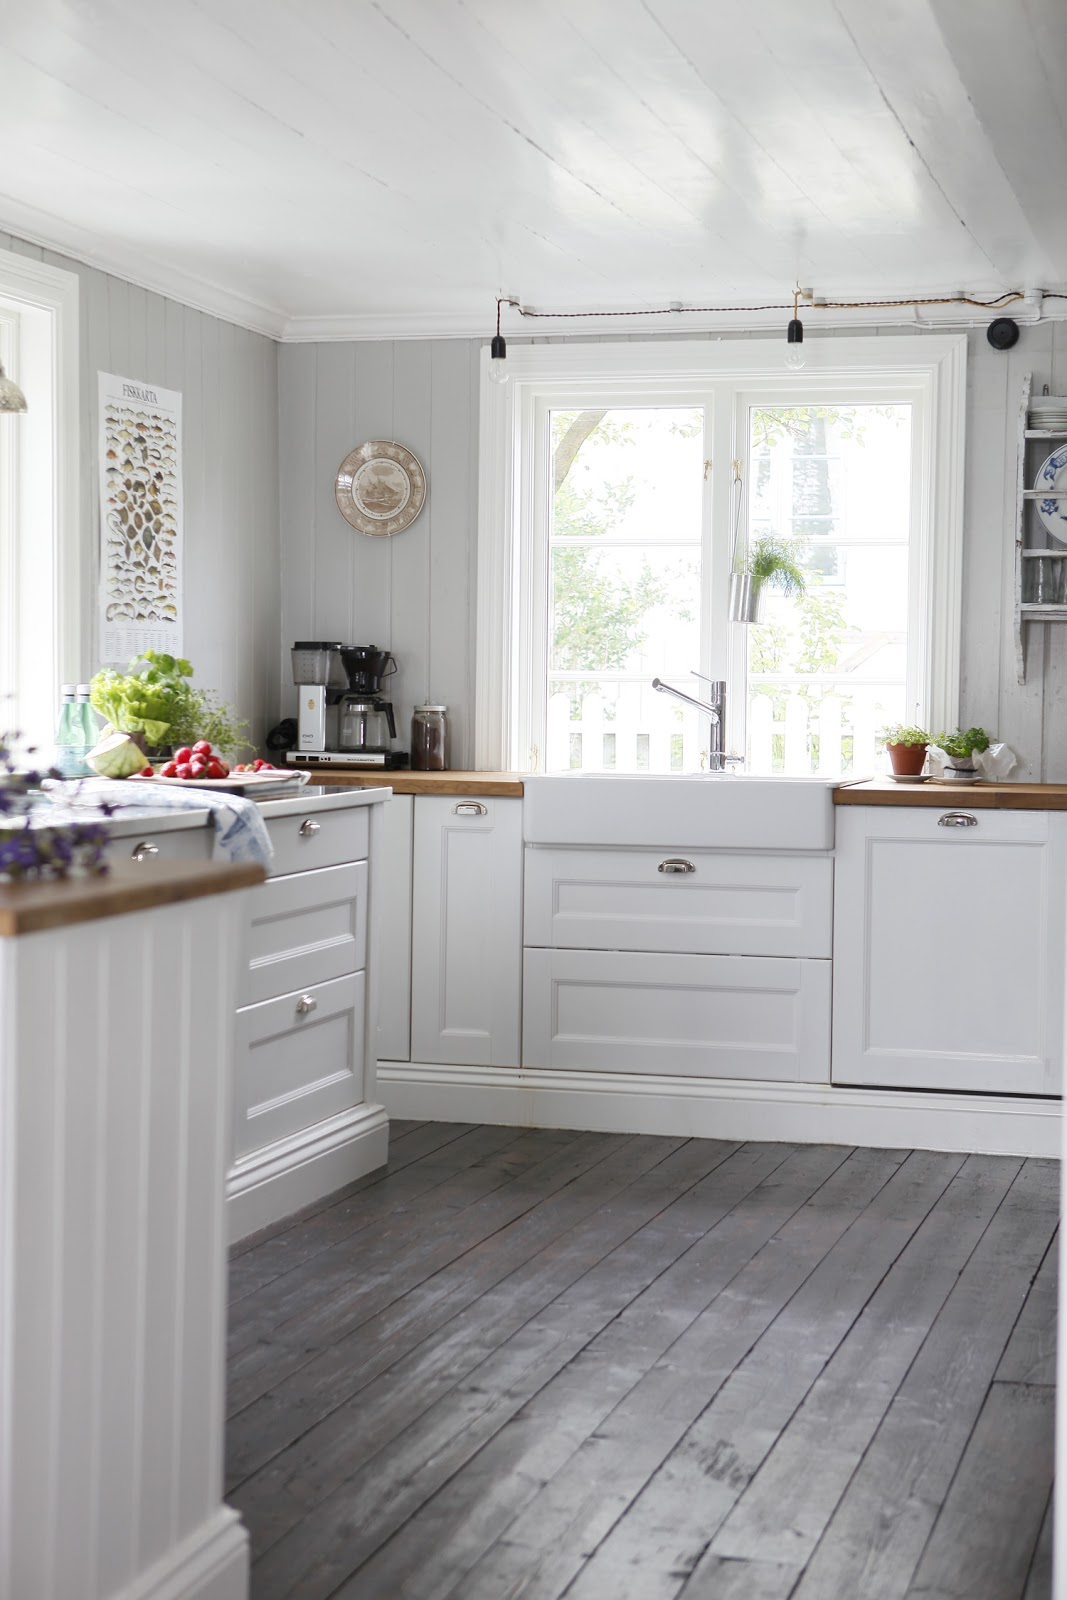 painting wood floors wood floor in kitchen 9 best images about Painting Wood Floors on Pinterest How to paint Baby rooms and Painted floors